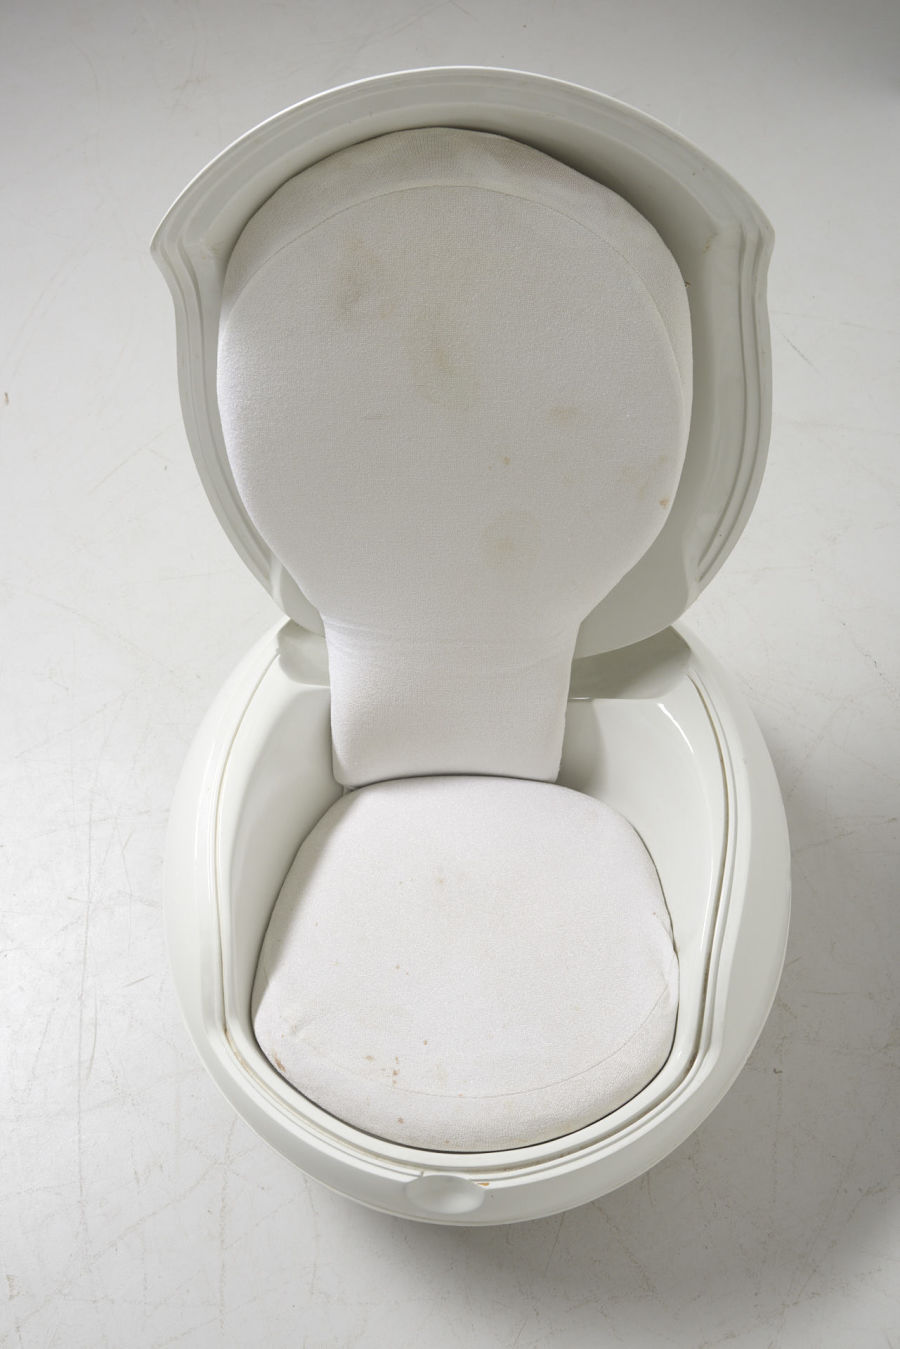 modestfurniture-vintage-2722-peter-ghyczy-garden-egg-chair-white08